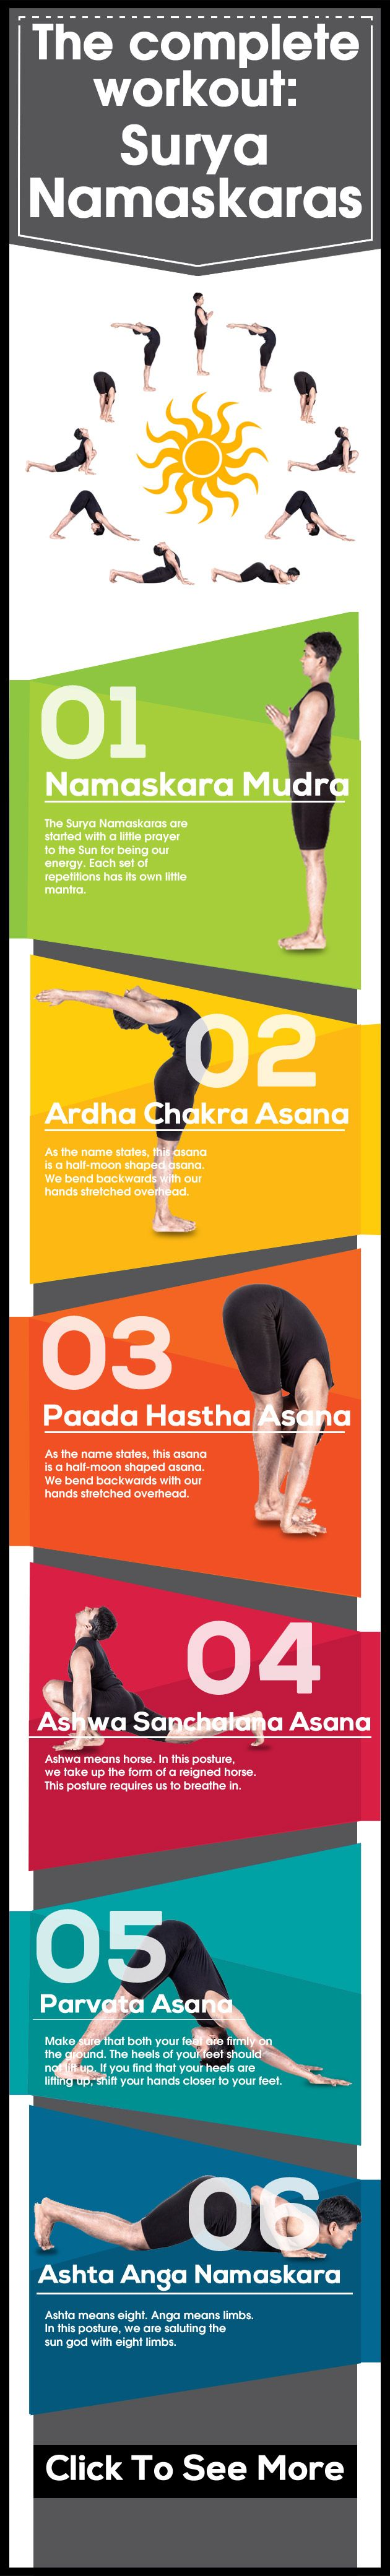 The Complete Workout: Surya Namaskaras